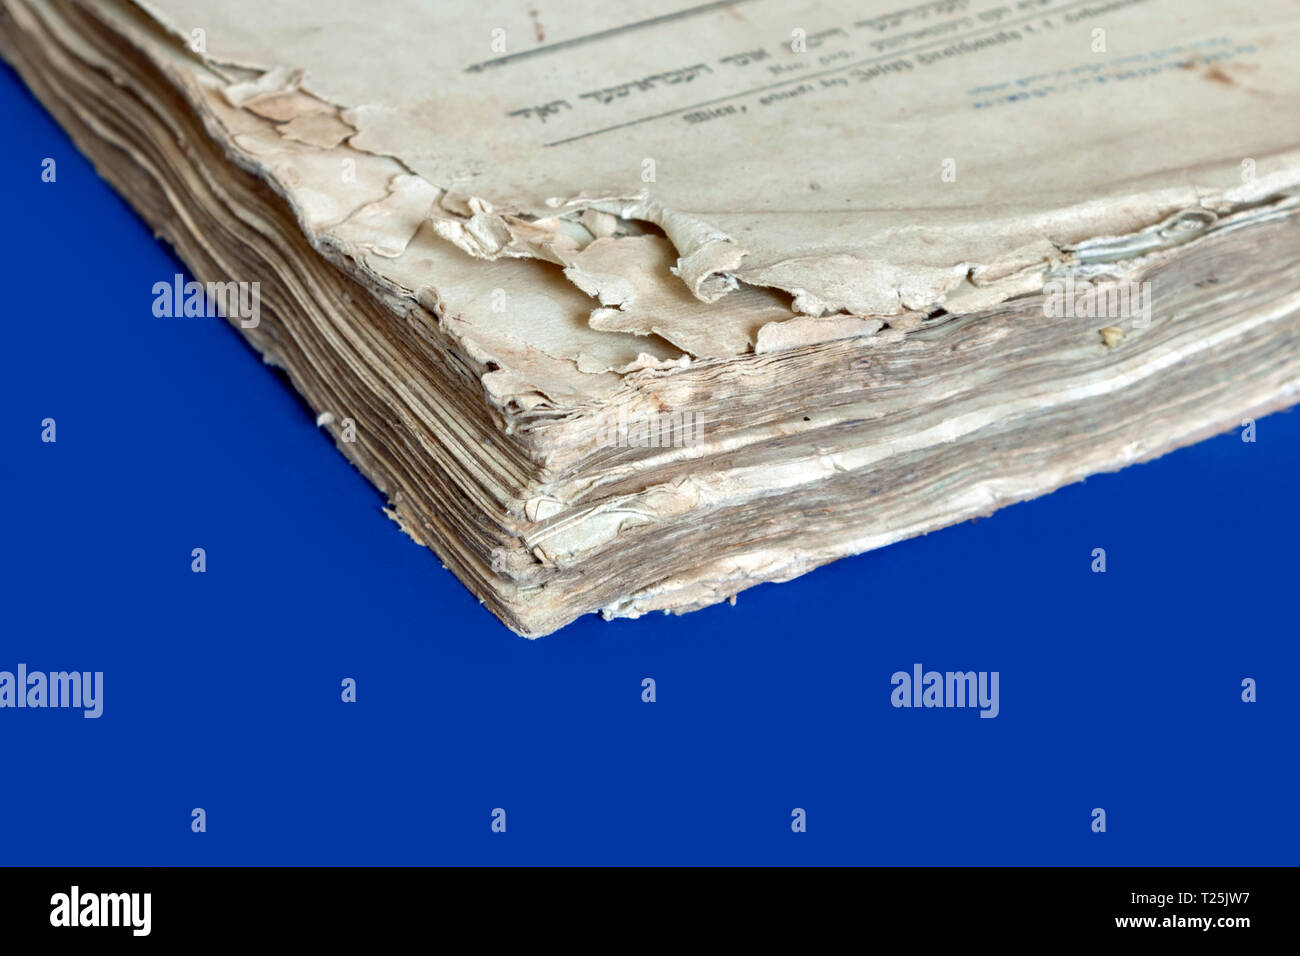 Talmud Page Stock Photos & Talmud Page Stock Images - Alamy